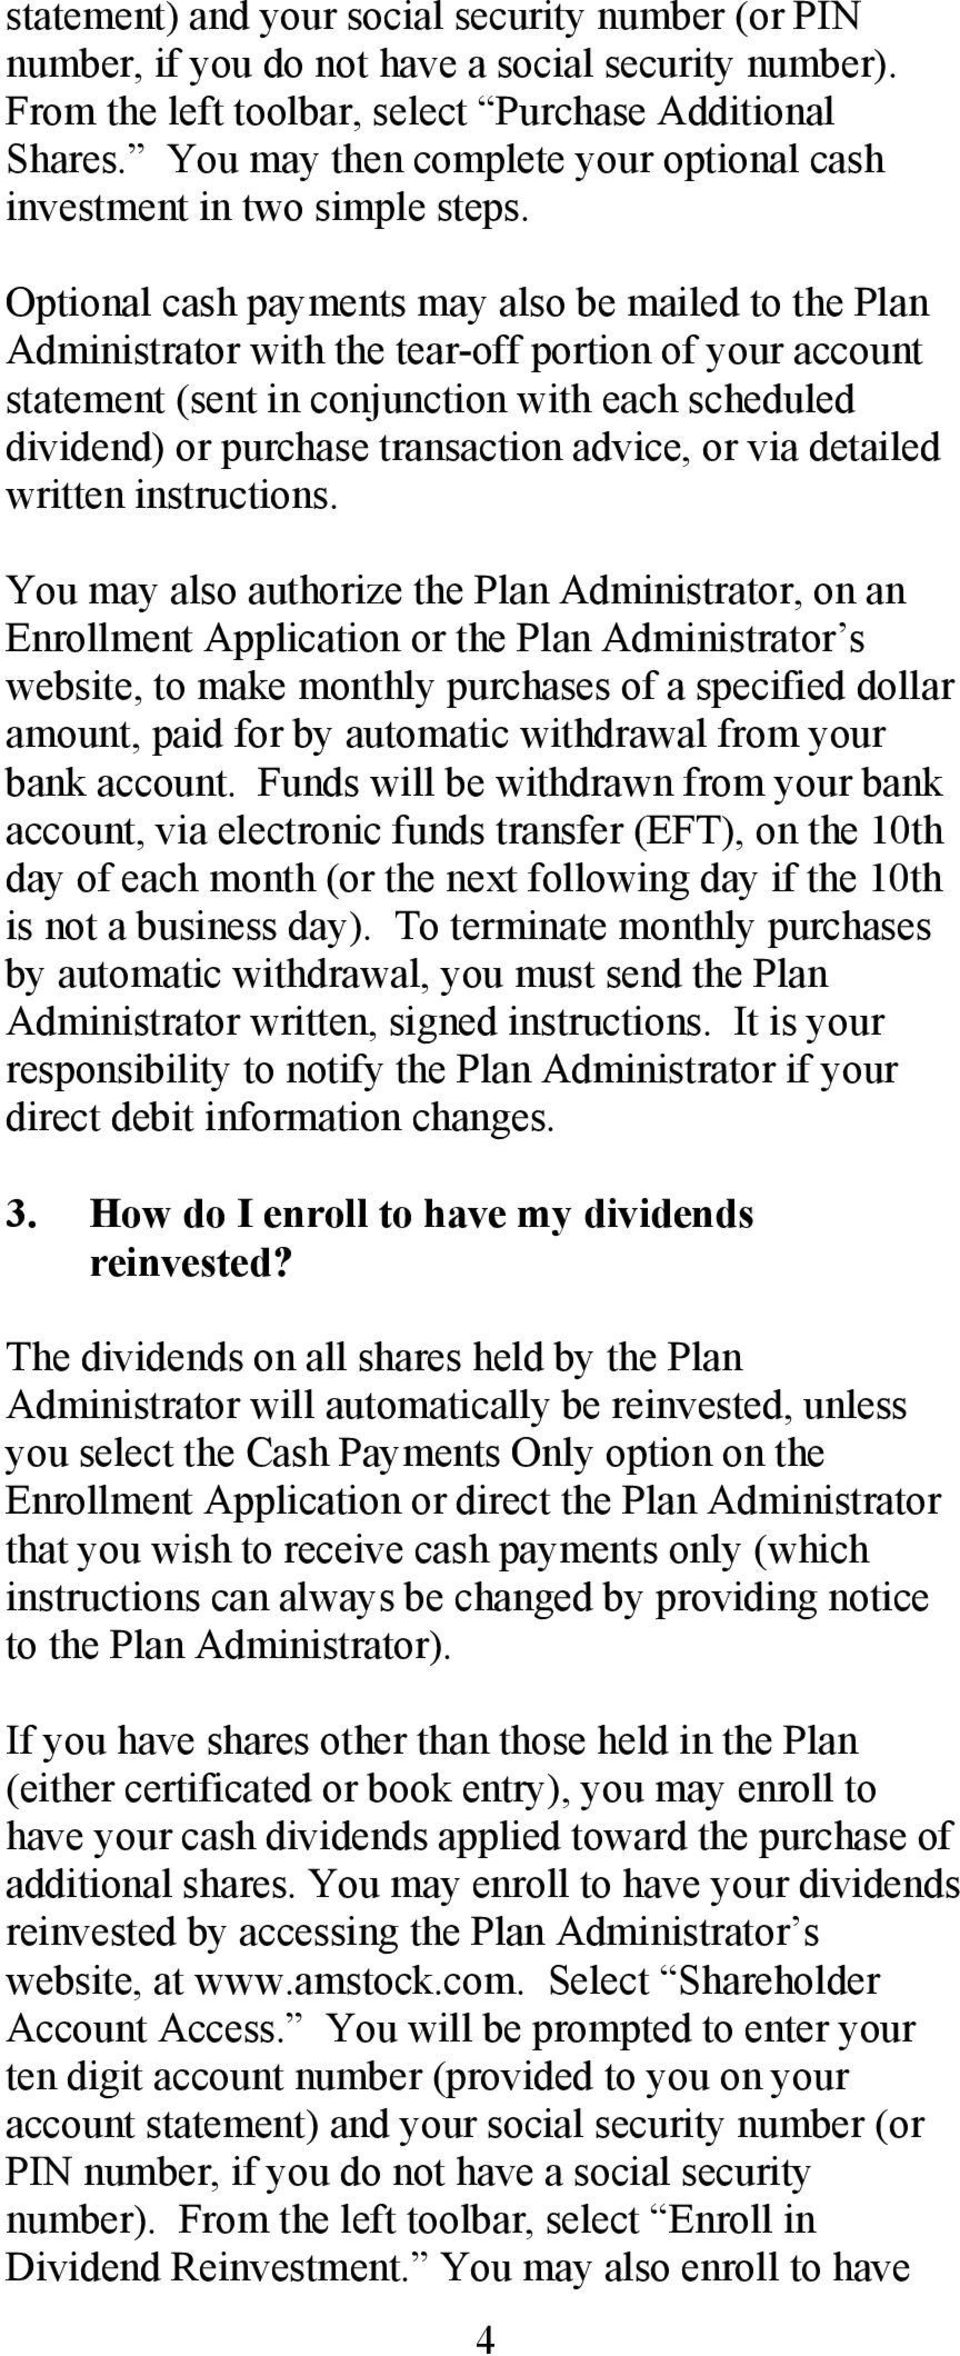 Optional cash payments may also be mailed to the Plan Administrator with the tear-off portion of your account statement (sent in conjunction with each scheduled dividend) or purchase transaction